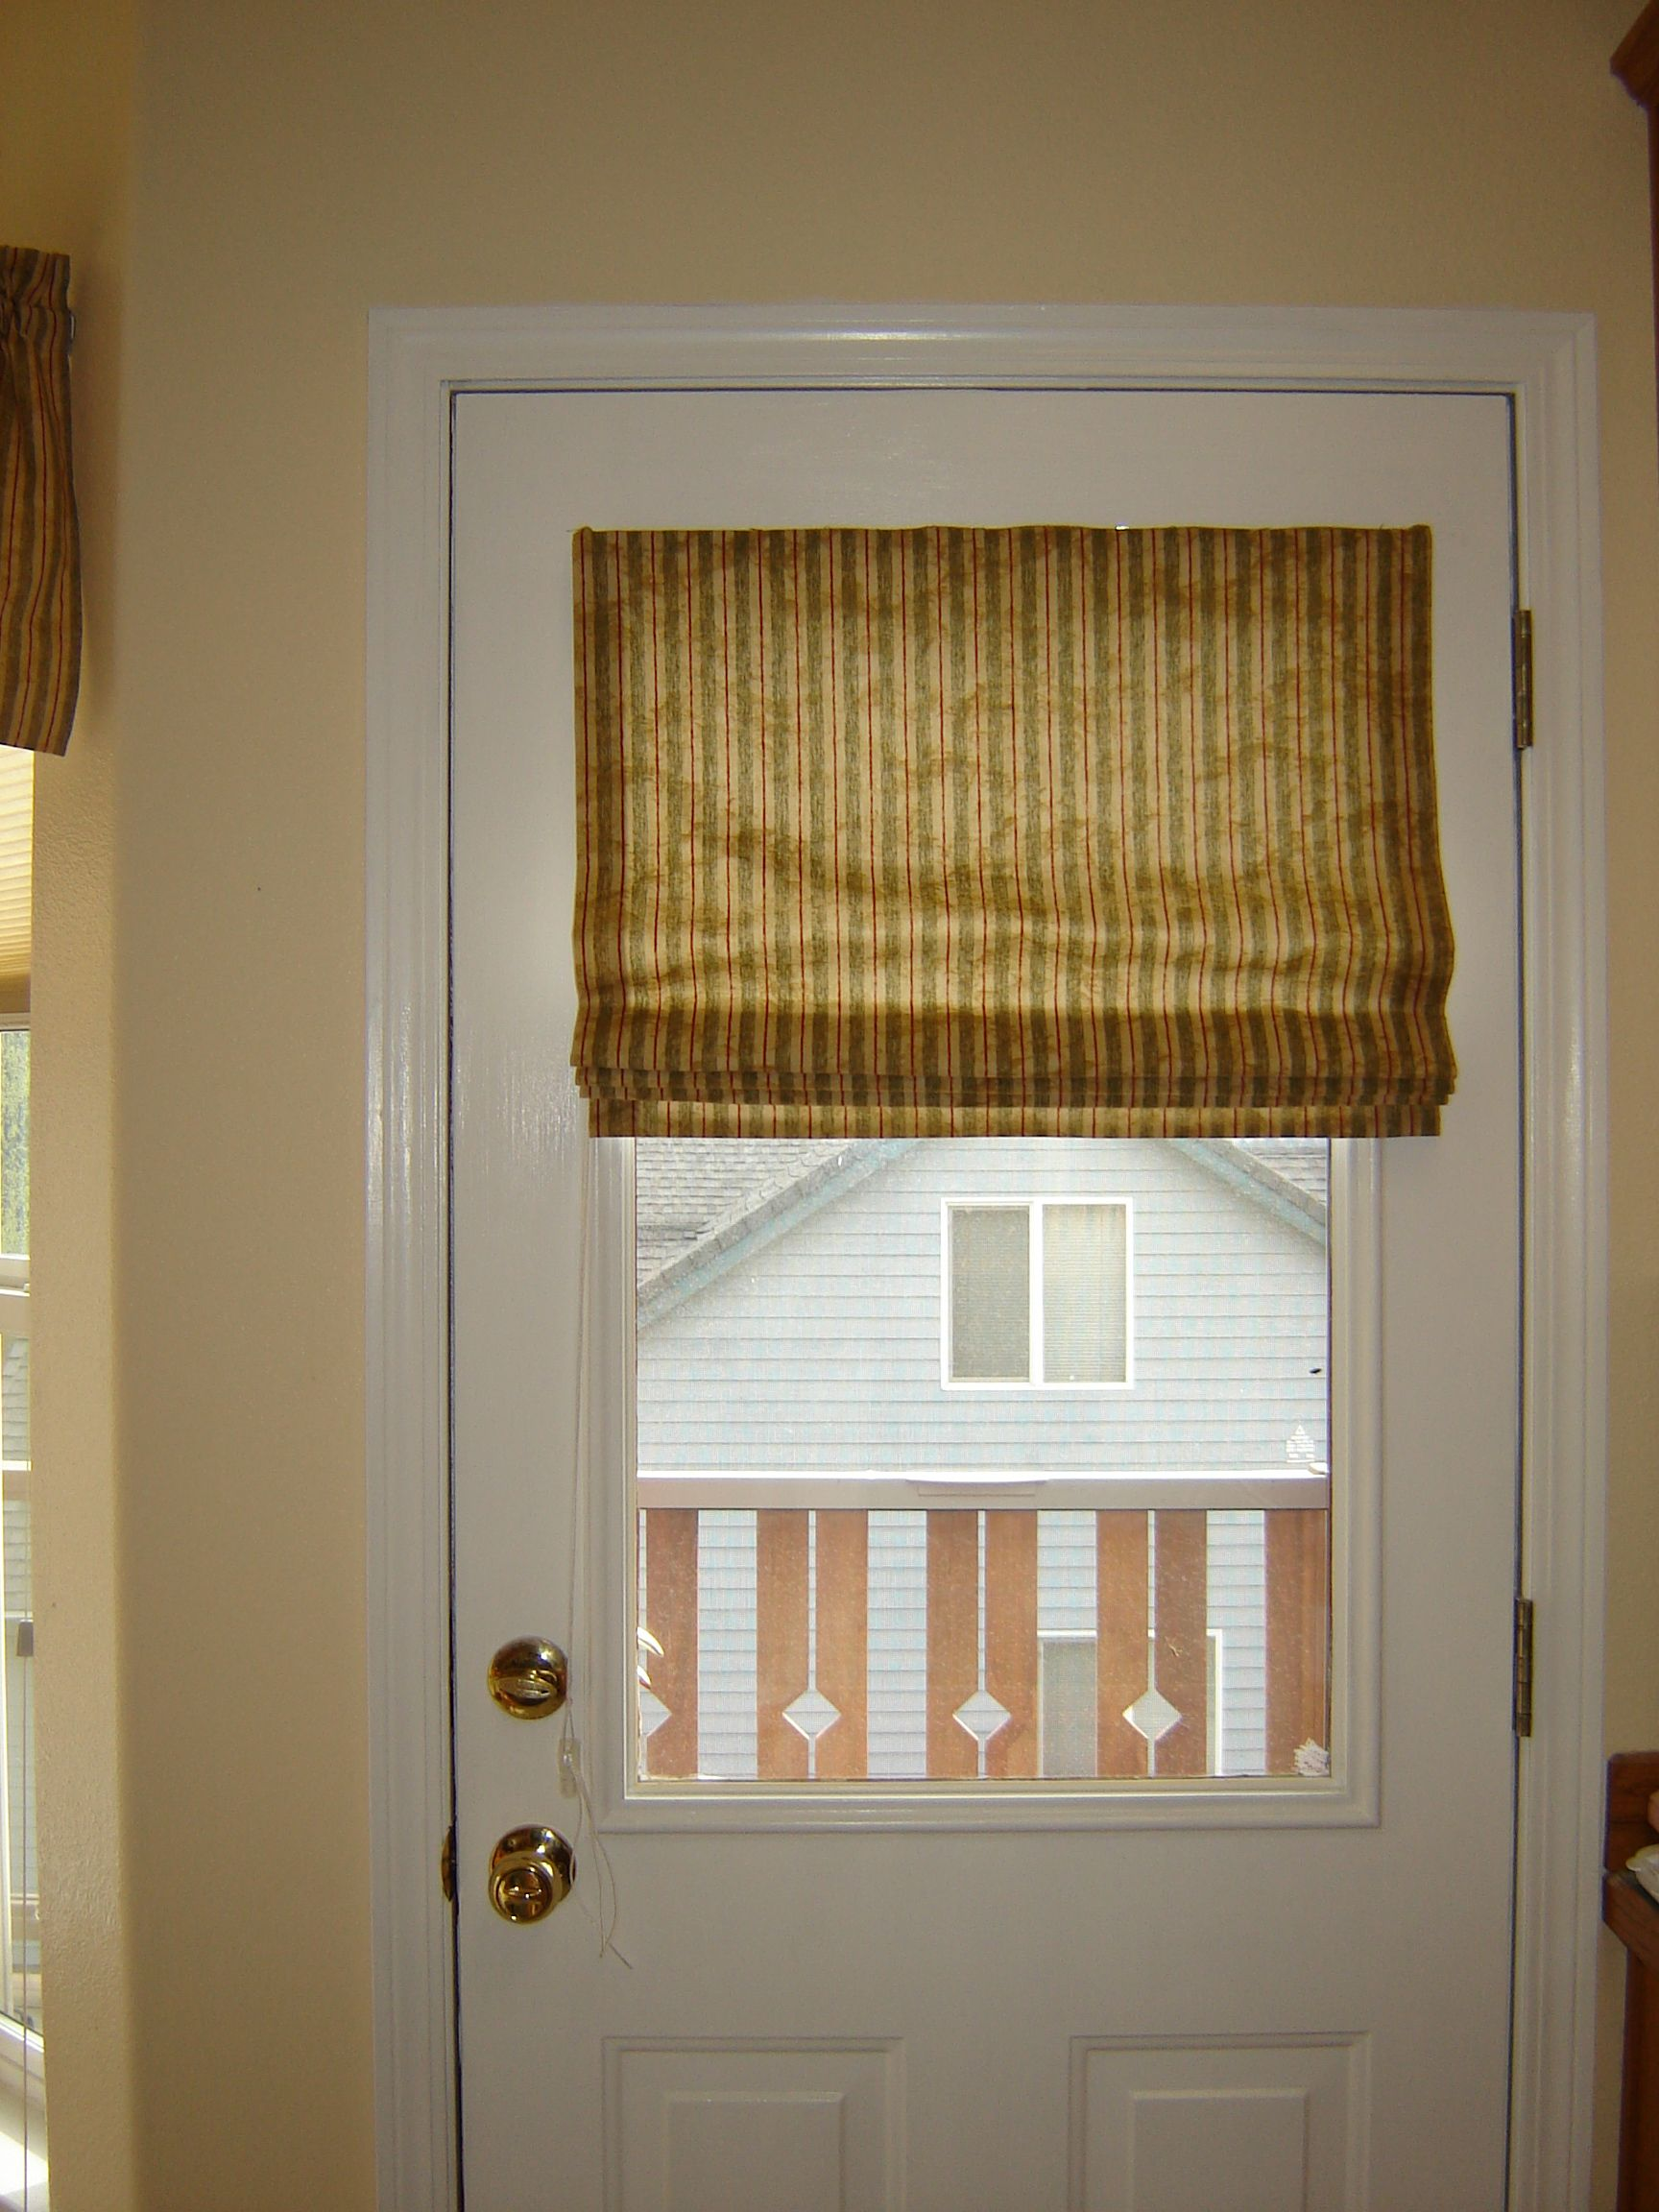 Roman Shade For Metal Door Glued Magnets To The Back Of The Wooden Mounting Board No Holes Needed In The D Blinds For Windows Windows And Doors Steel Doors